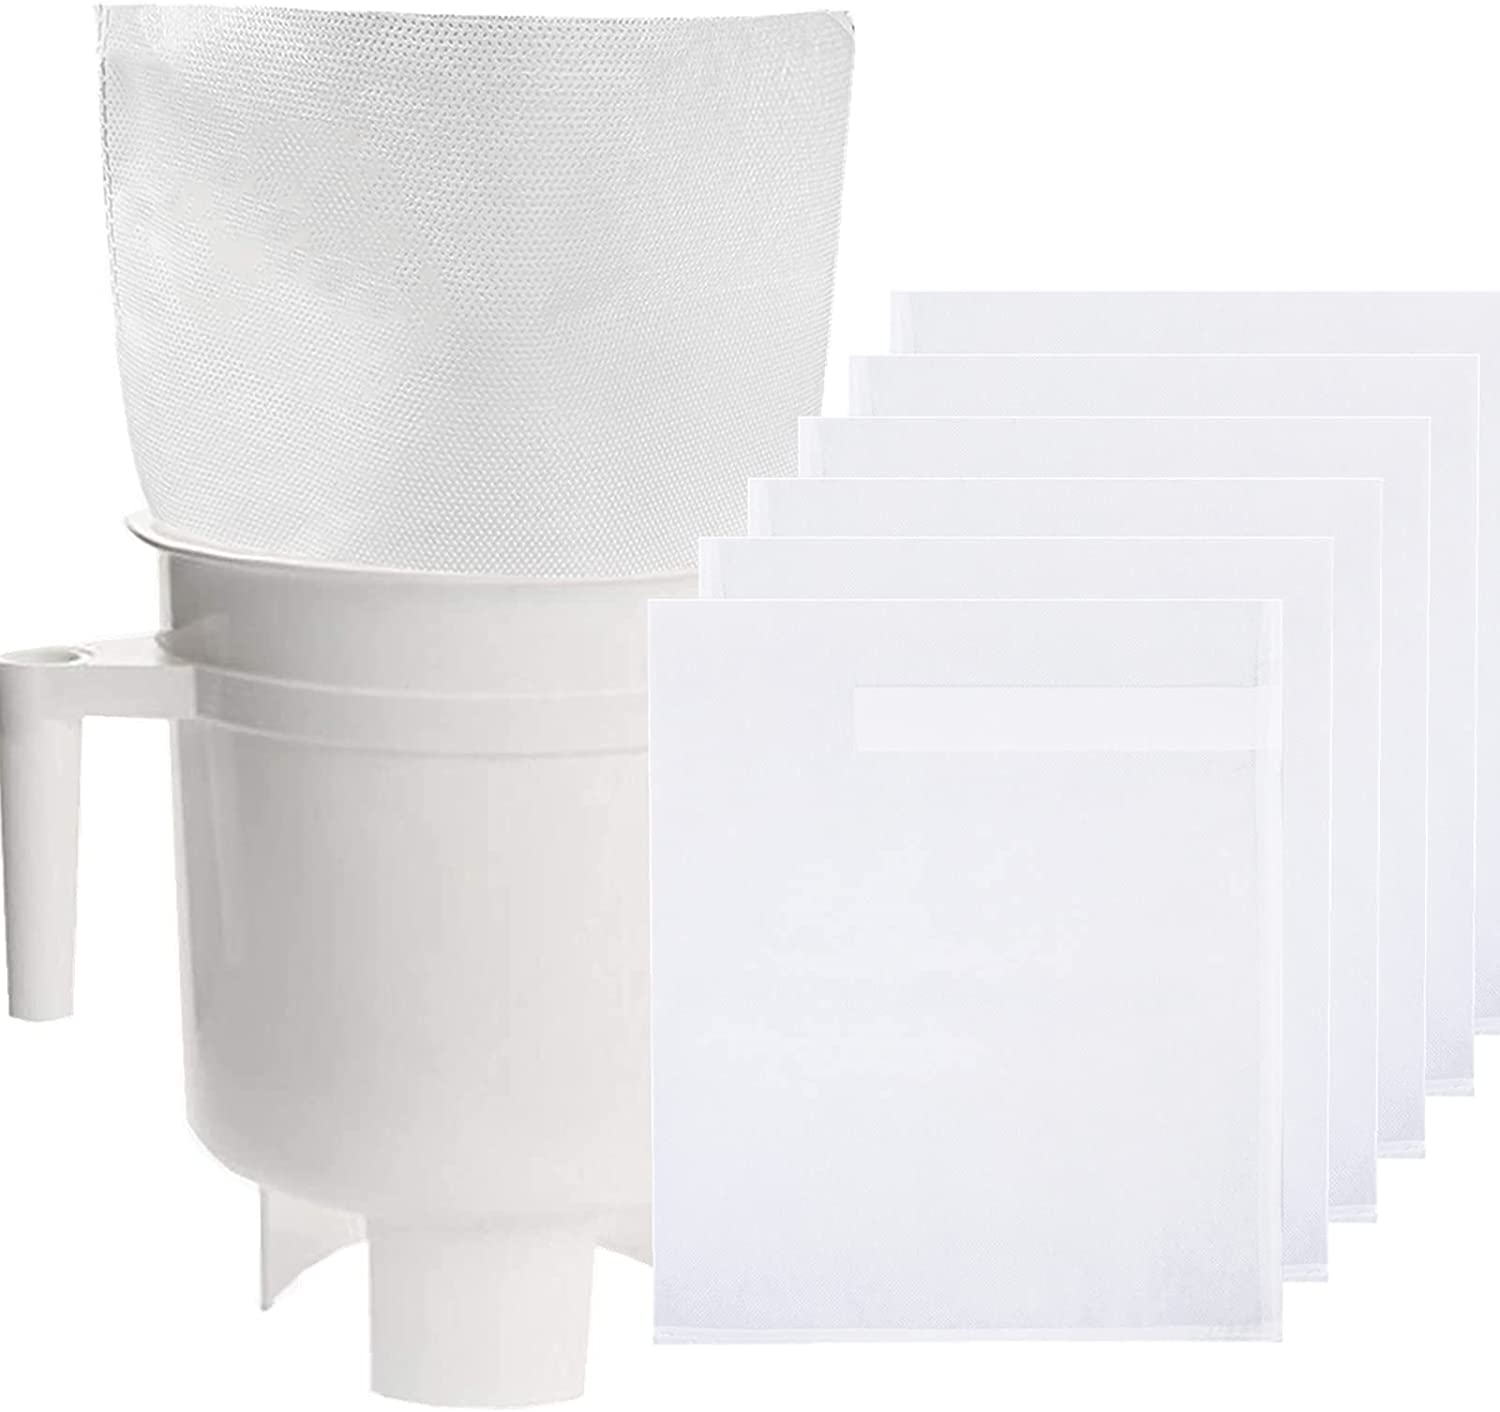 Cold Brew Coffee Filter Bags - 100 Pack Home Cold Brew System Filter Bags Compatible for Toddy Cold Brew Coffee Maker 11.25''x 13'' Natural Durable Home Model Disposable Coffee Brewing Bags